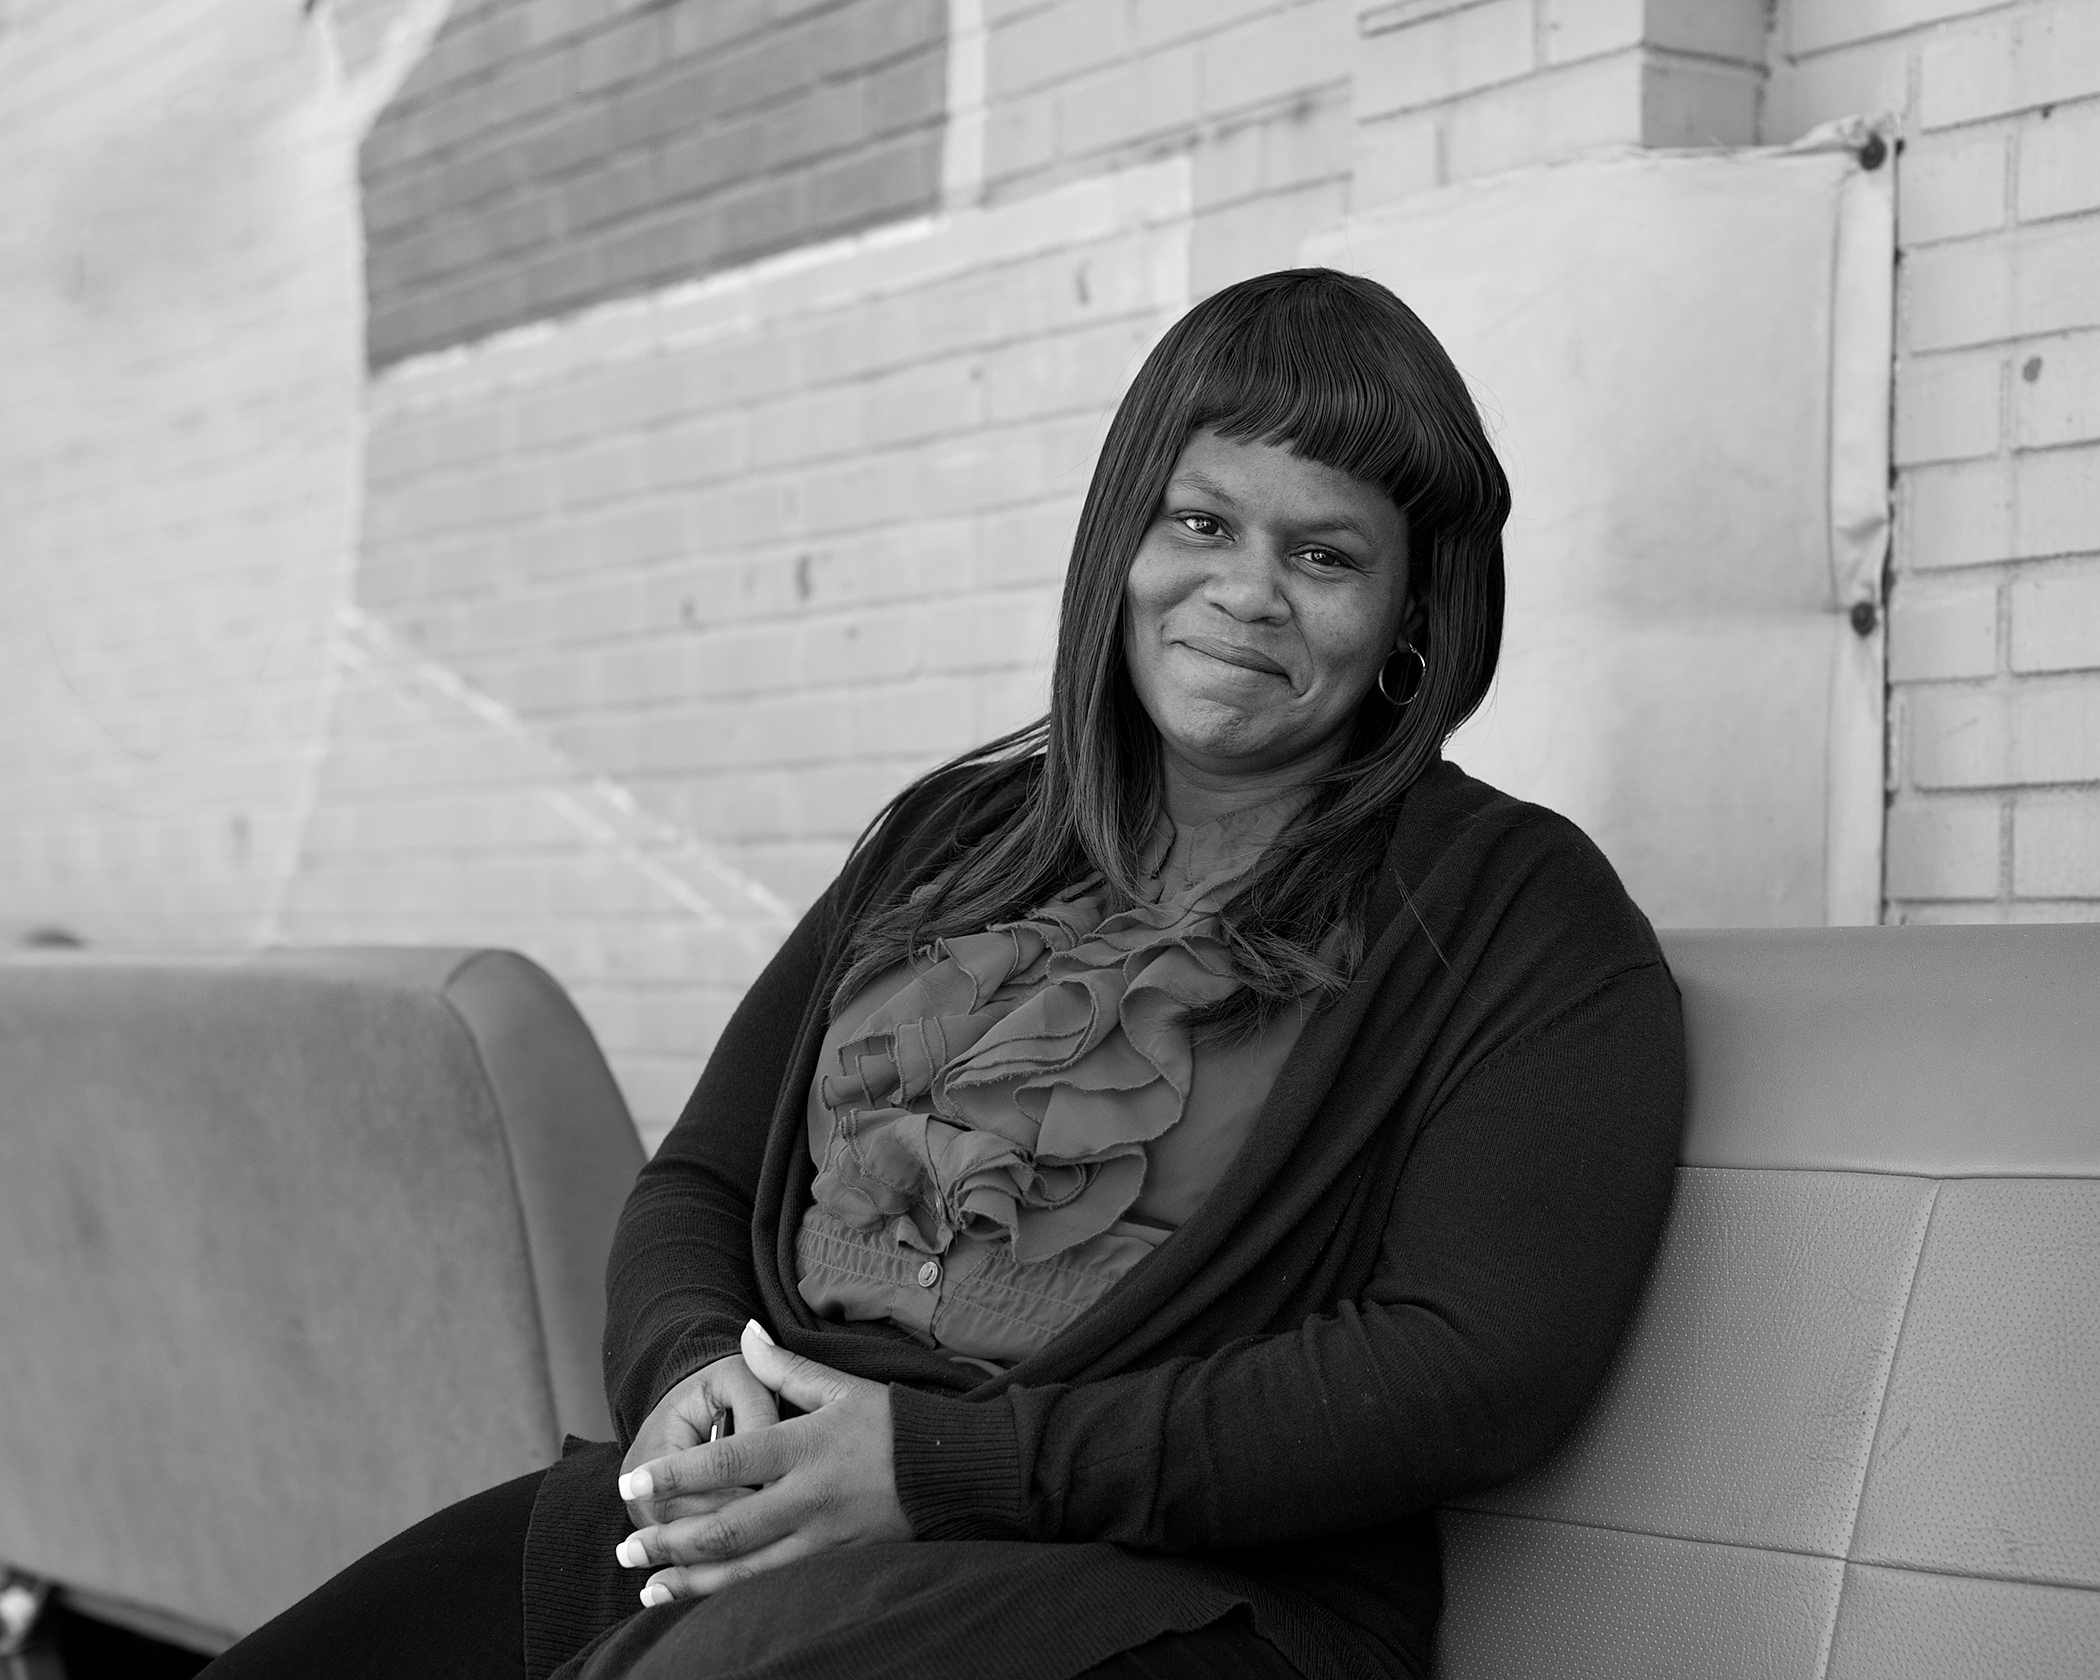 KANISHE, 40. Served 2-1/2 years. Released: 2013.   Even though Judy's an inmate, she basically runs the parenting classes. But because she's an inmate, we can relate to her. I didn't think I could be a good parent because I had substance abuse issues and I lost my first son, but she told me I could be a good parent as long as I'm physically and emotionally healthy. I still use what Judy says in my day-to-day life. I take care of myself so I can take care of my son.